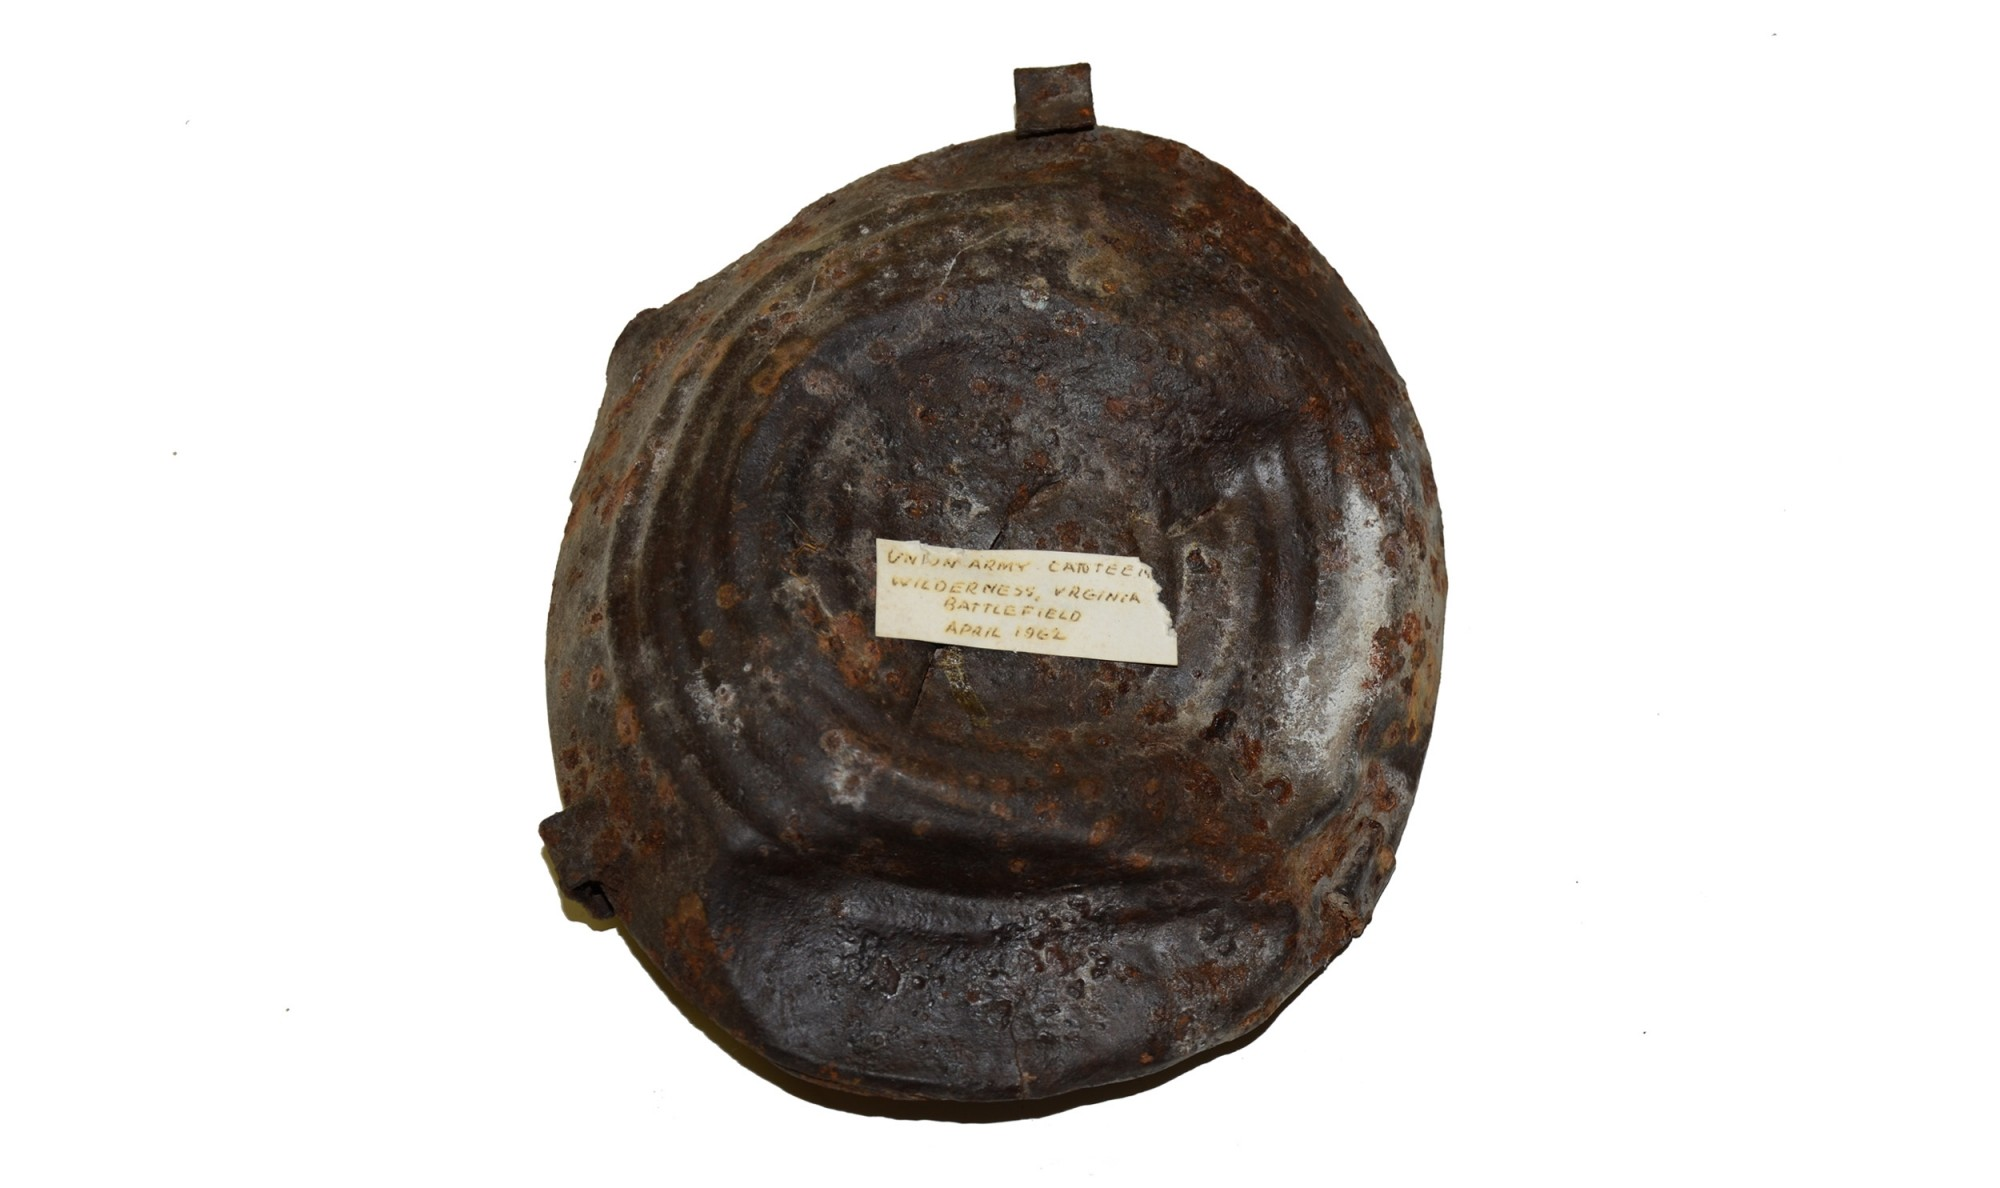 BULLSEYE CANTEEN RECOVERED AT THE WILDERNESS IN 1962